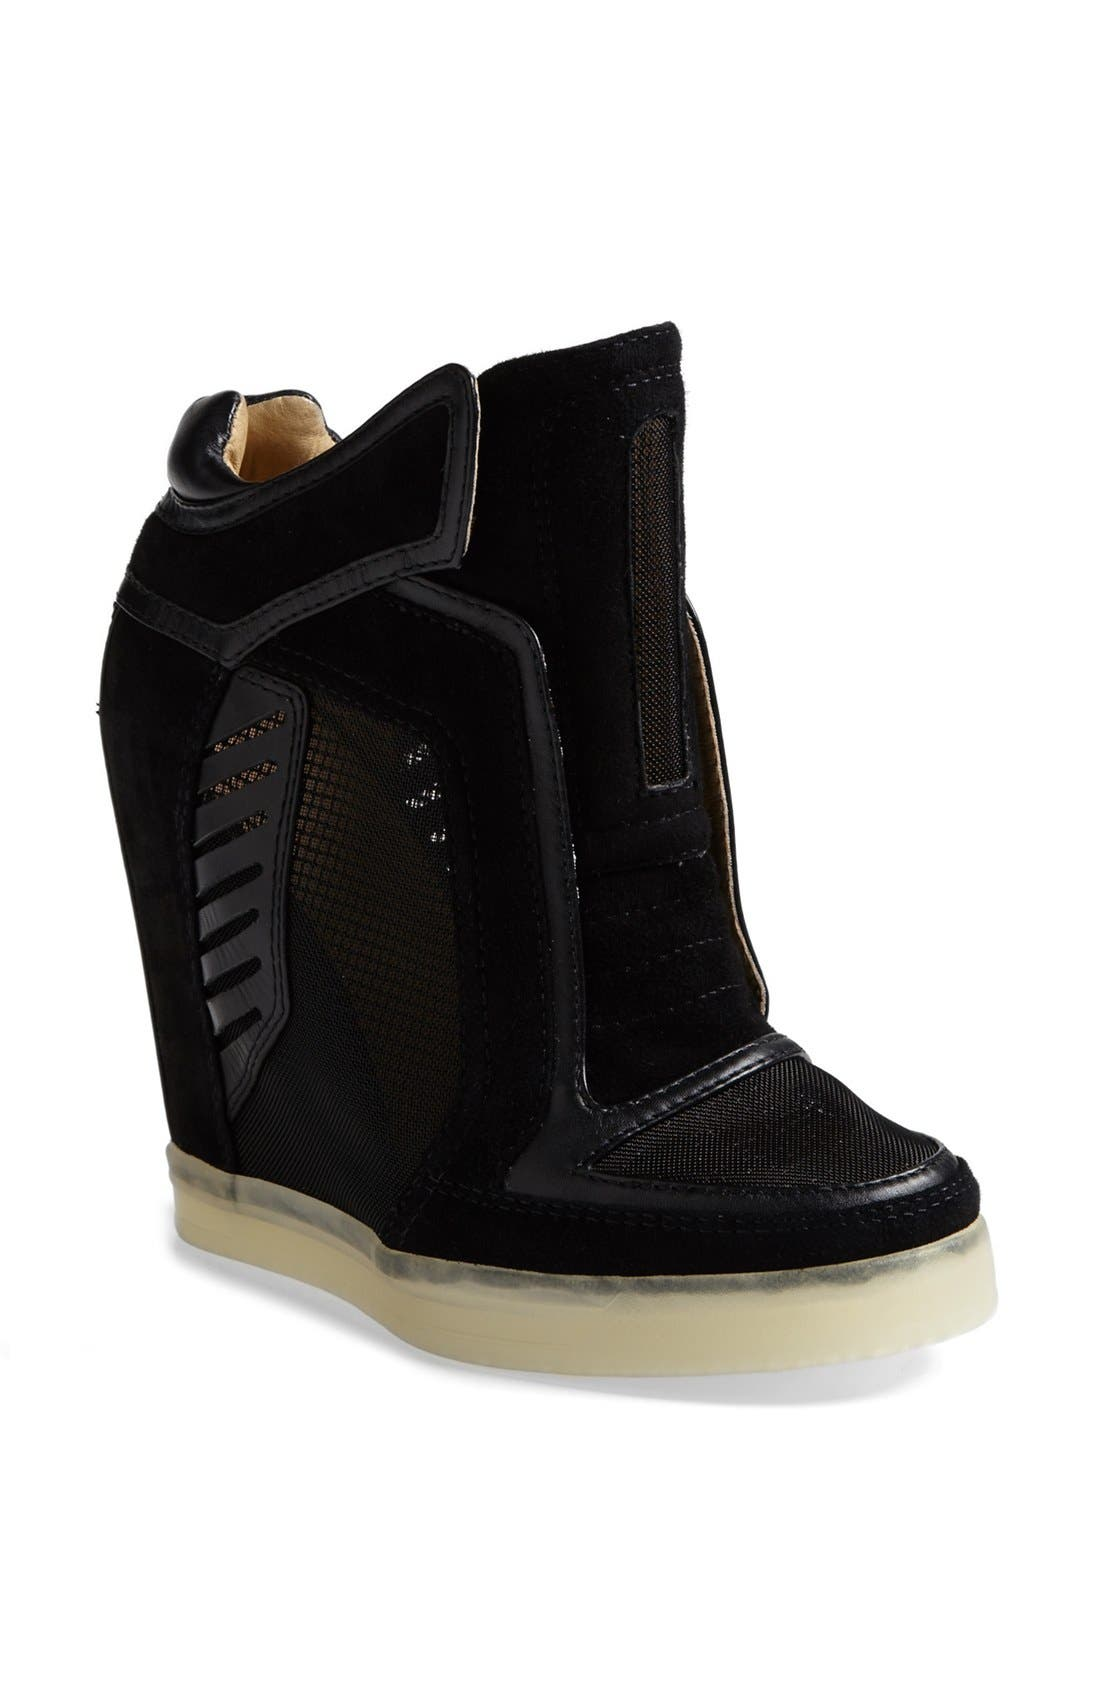 Main Image - L.A.M.B. 'Freeda' High Top Sneaker with Glow-in-the-Dark Sole